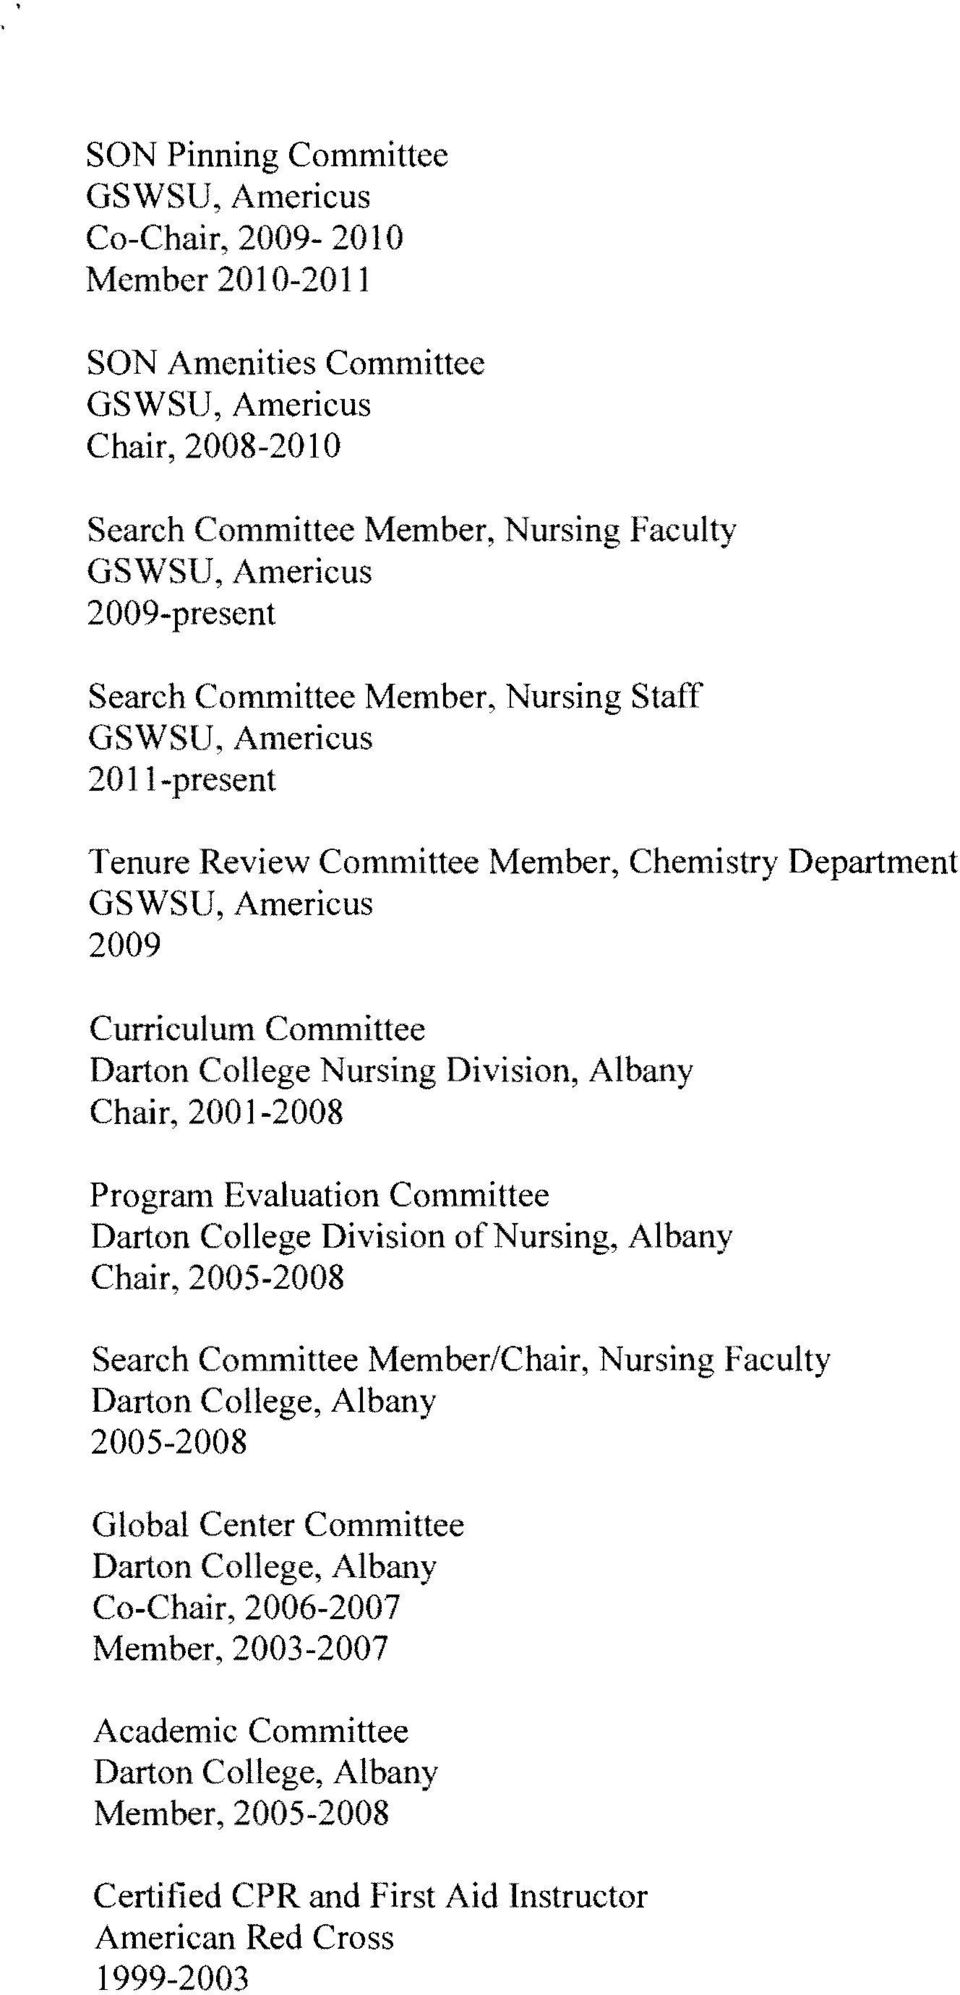 Evaluation Committee Darton College Division ofnursing, Albany Chair, 2005-2008 Search Committee Member/Chair, Nursing Faculty Darton College, Albany 2005-2008 Global Center